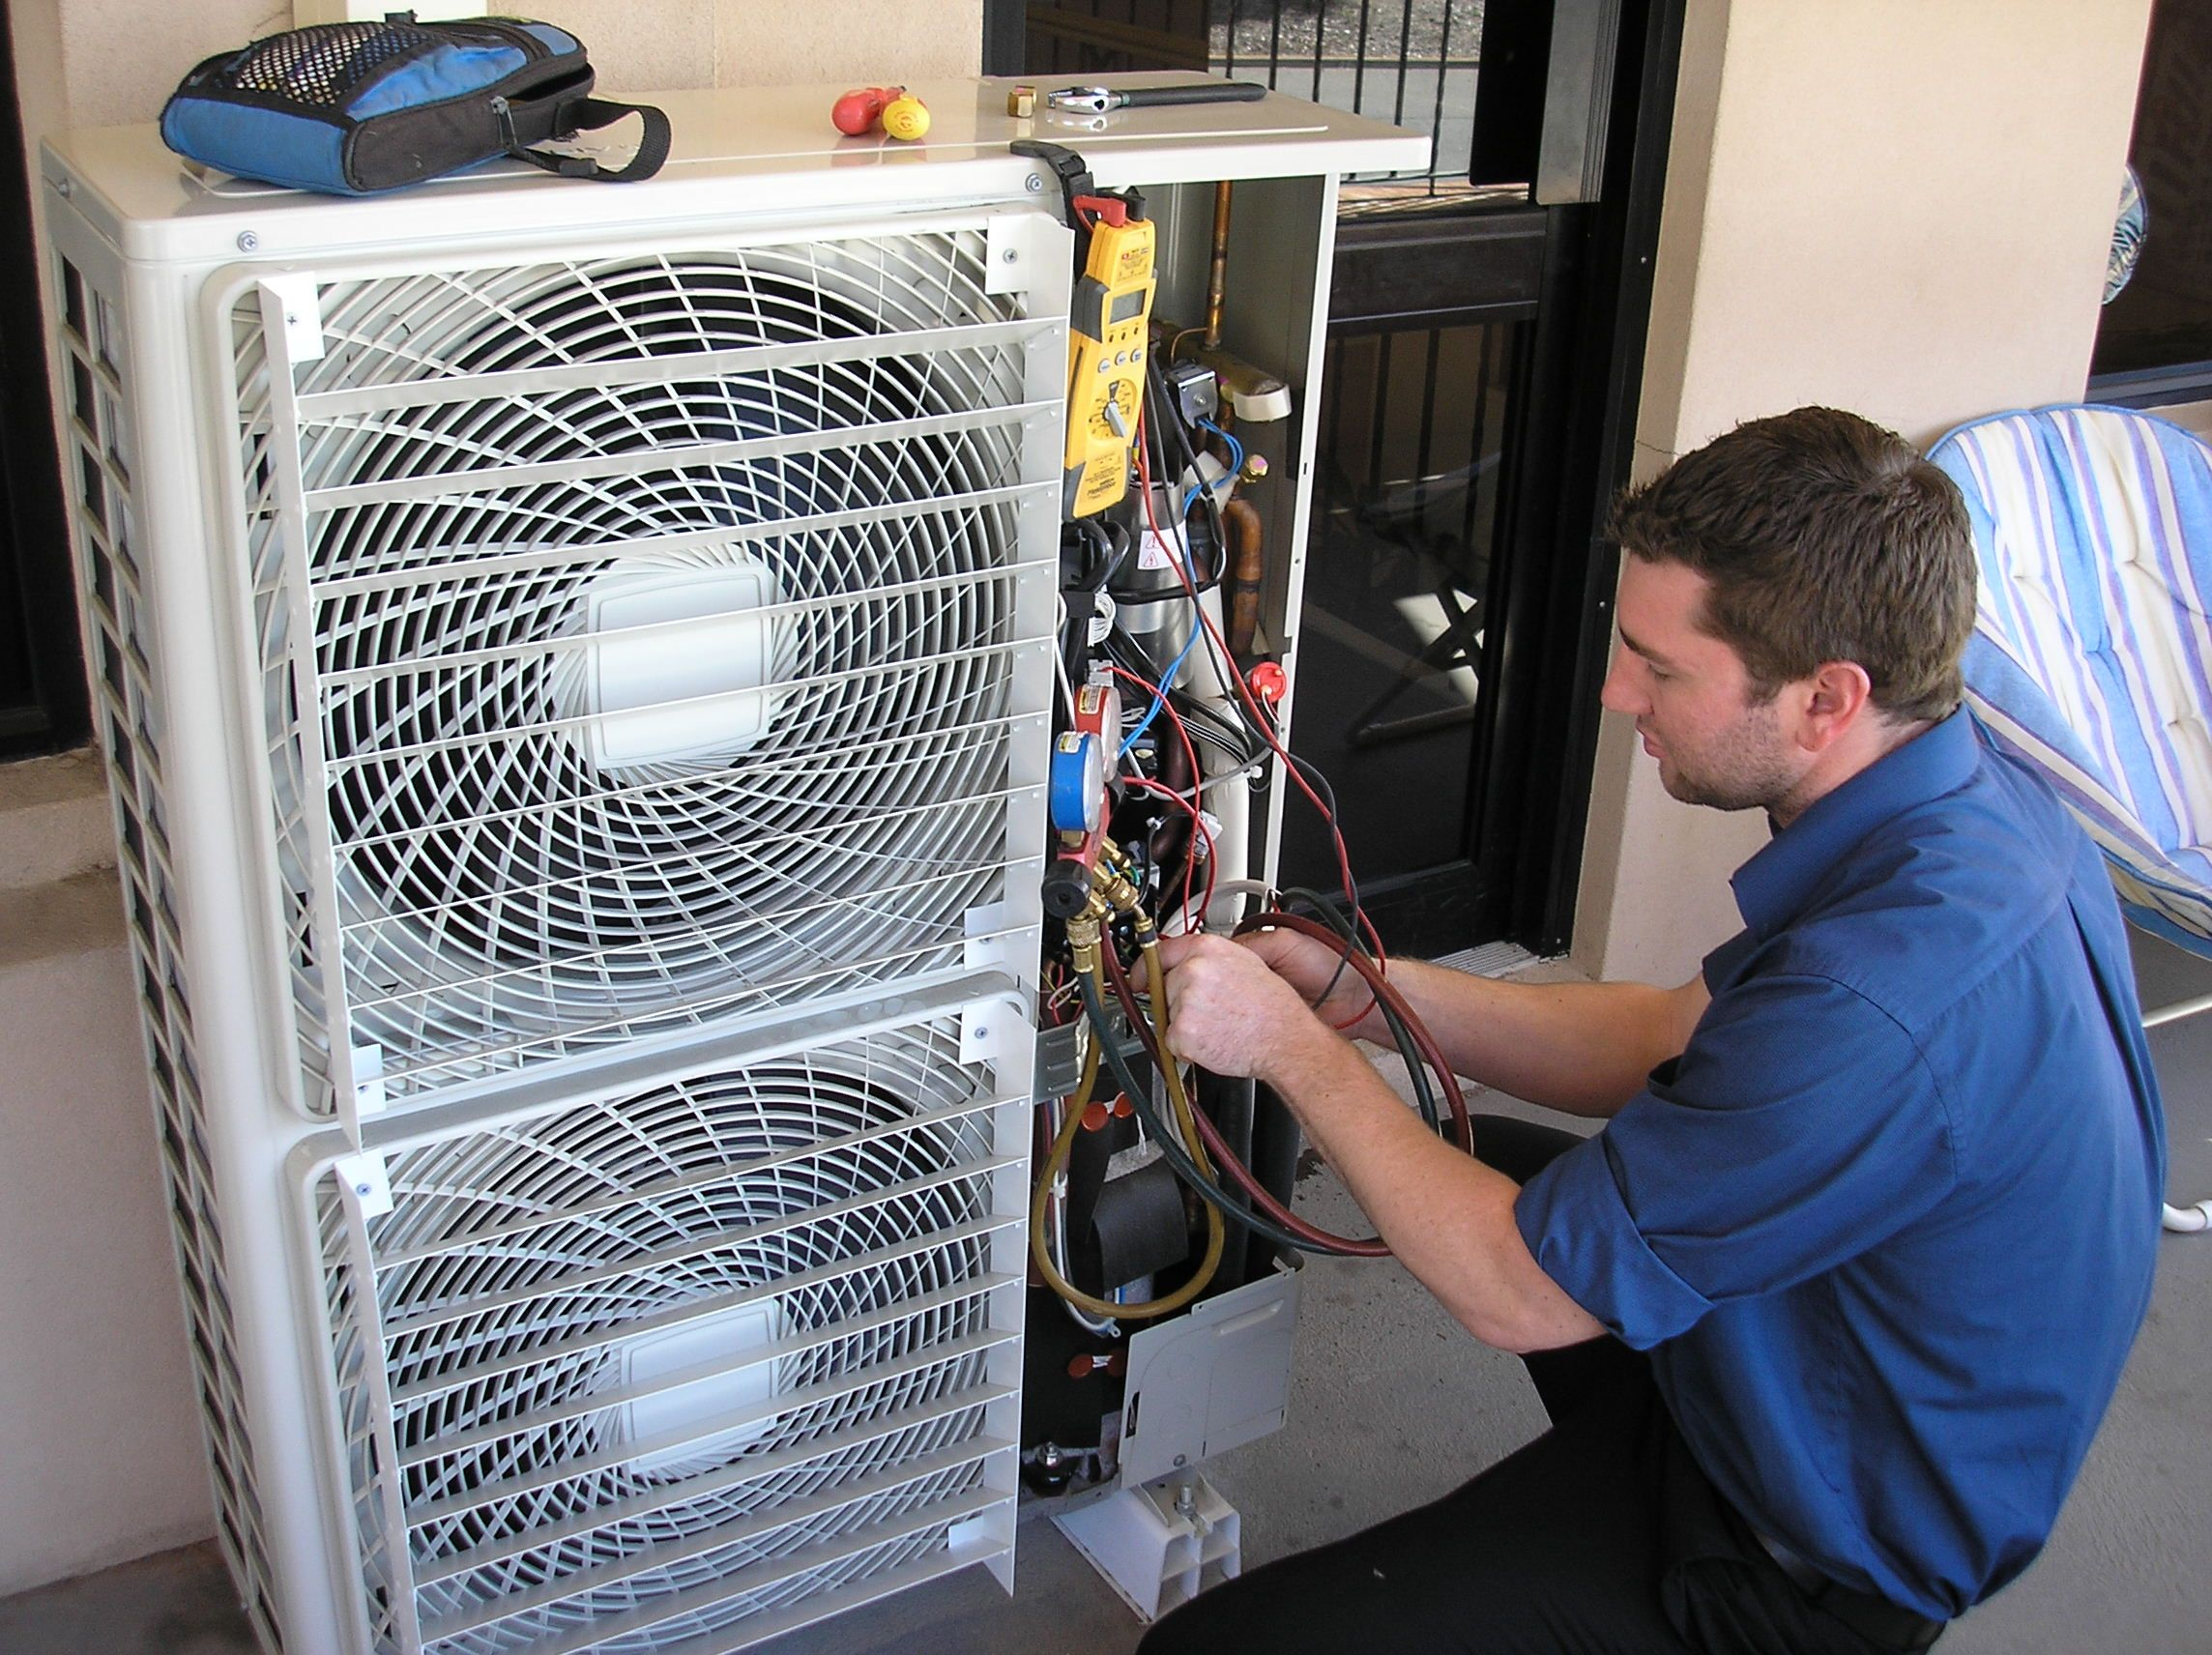 Airwin-Aircon - An Appreciable Aircon Industry Remarked As Affordable And Reliable Air Conditioned Service